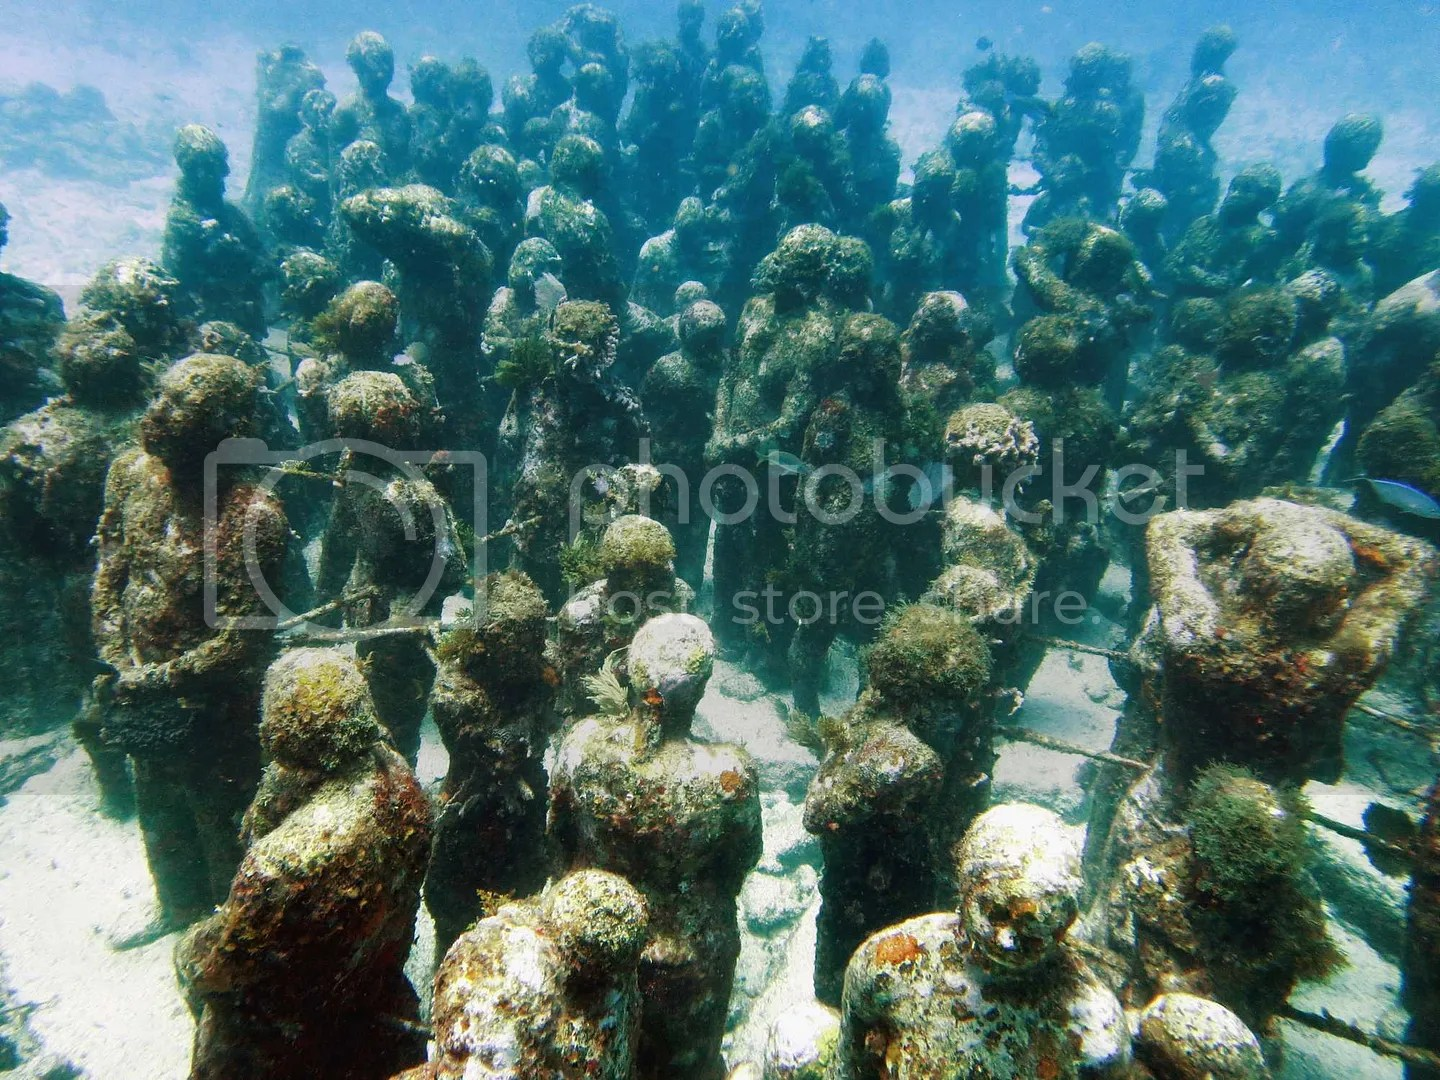 People under the water